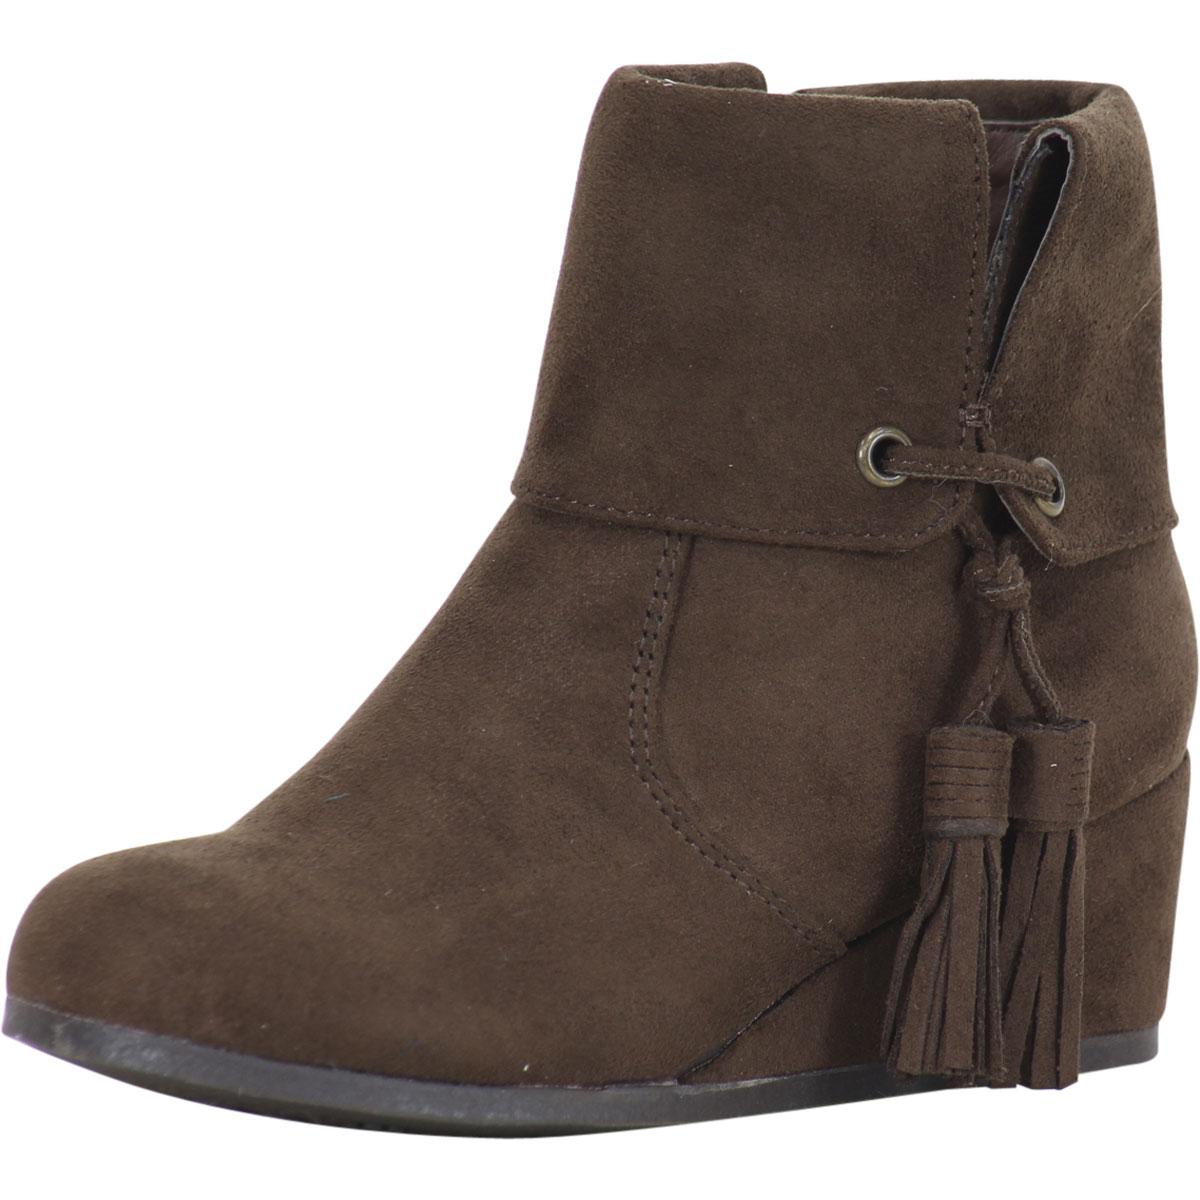 Image of Sugar Little/Big Girl's BonBon Wedge Heel Ankle Boots Shoes - Chocolate - 12 M US Little Kid